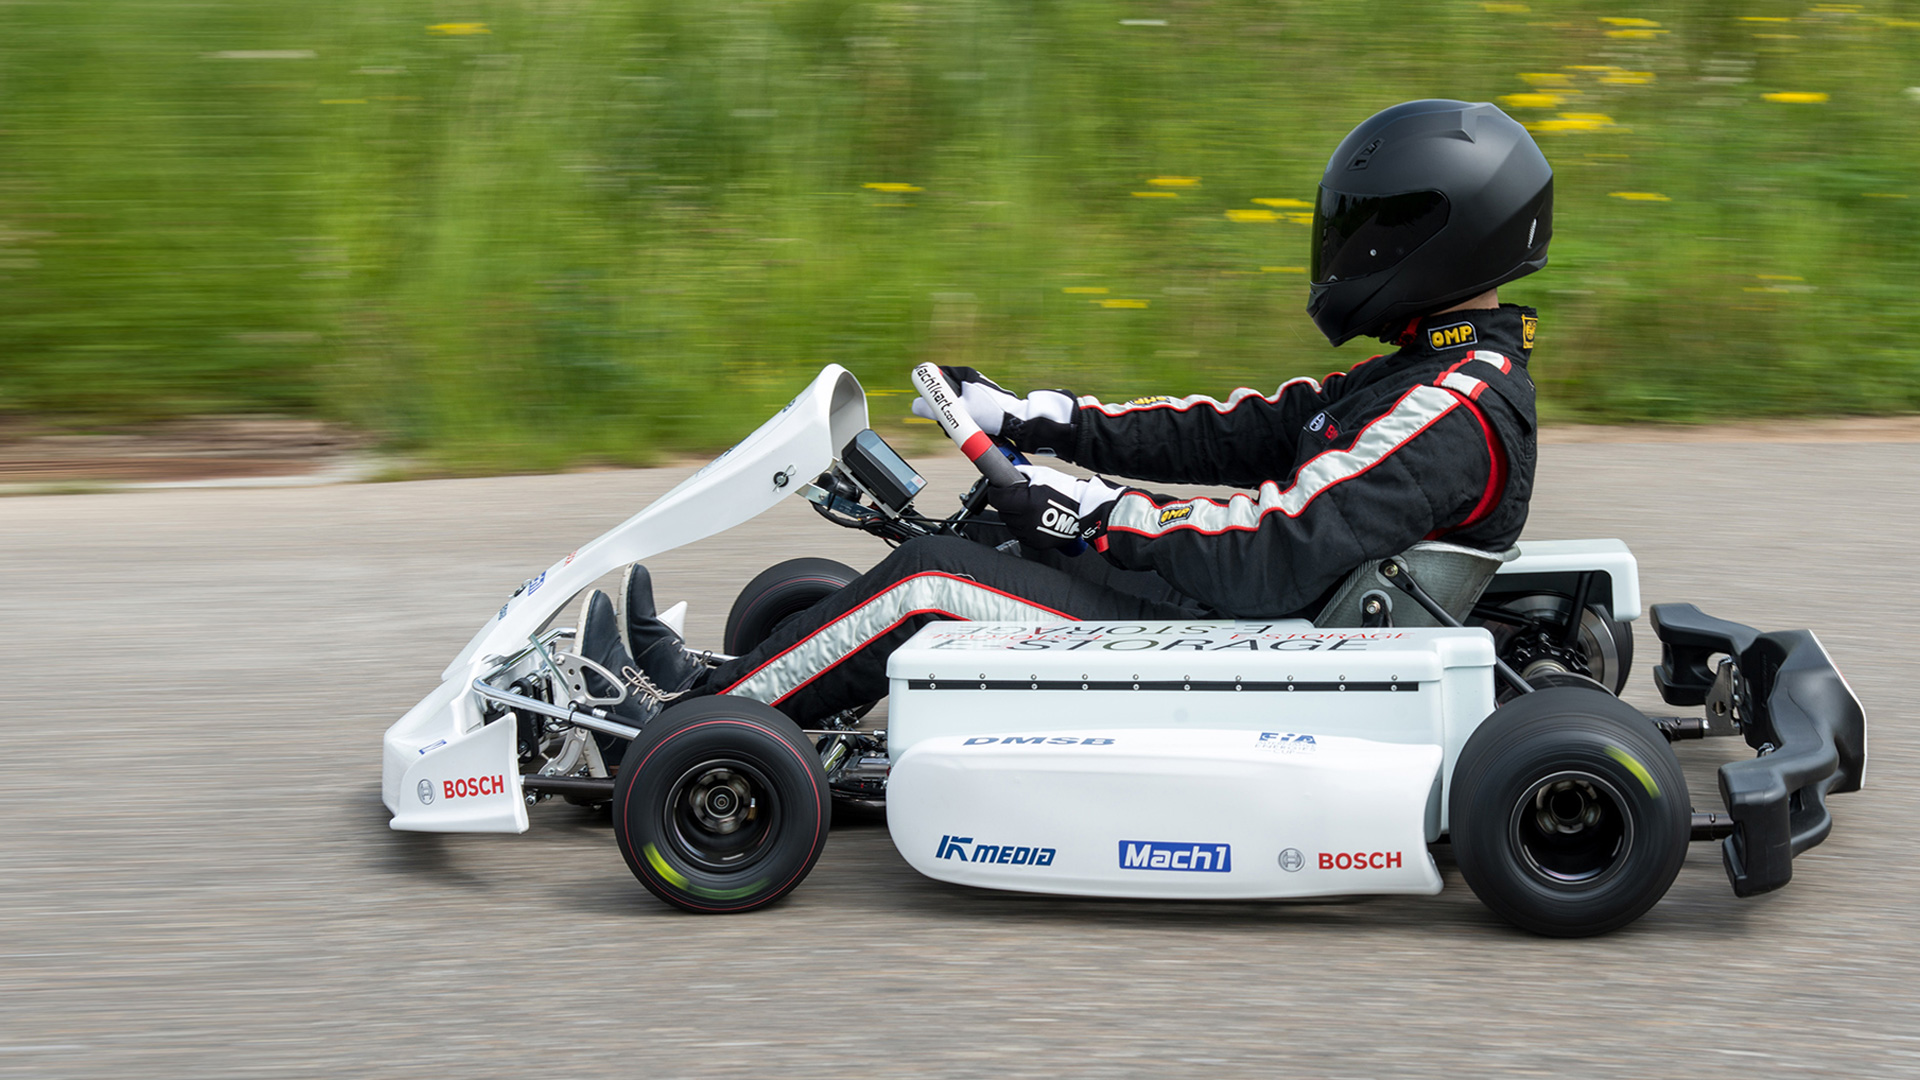 Bosch makes racing karts clean and quiet - Bosch Media Service